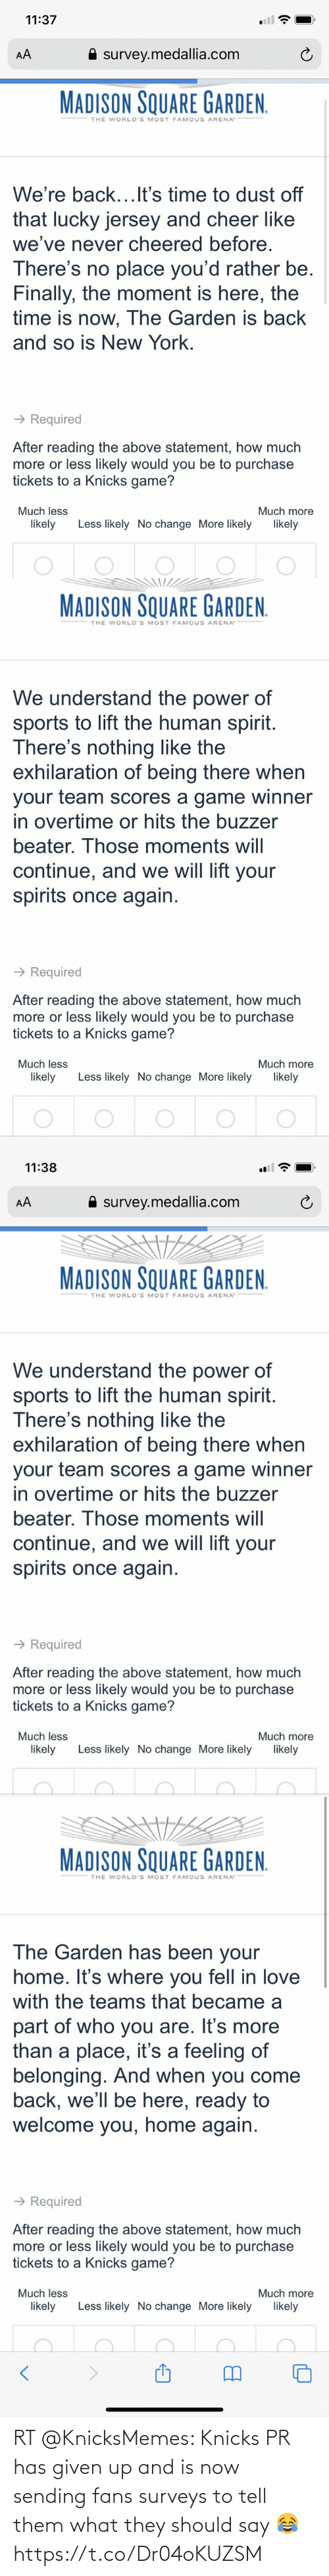 Should: RT @KnicksMemes: Knicks PR has given up and is now sending fans surveys to tell them what they should say 😂 https://t.co/Dr04oKUZSM